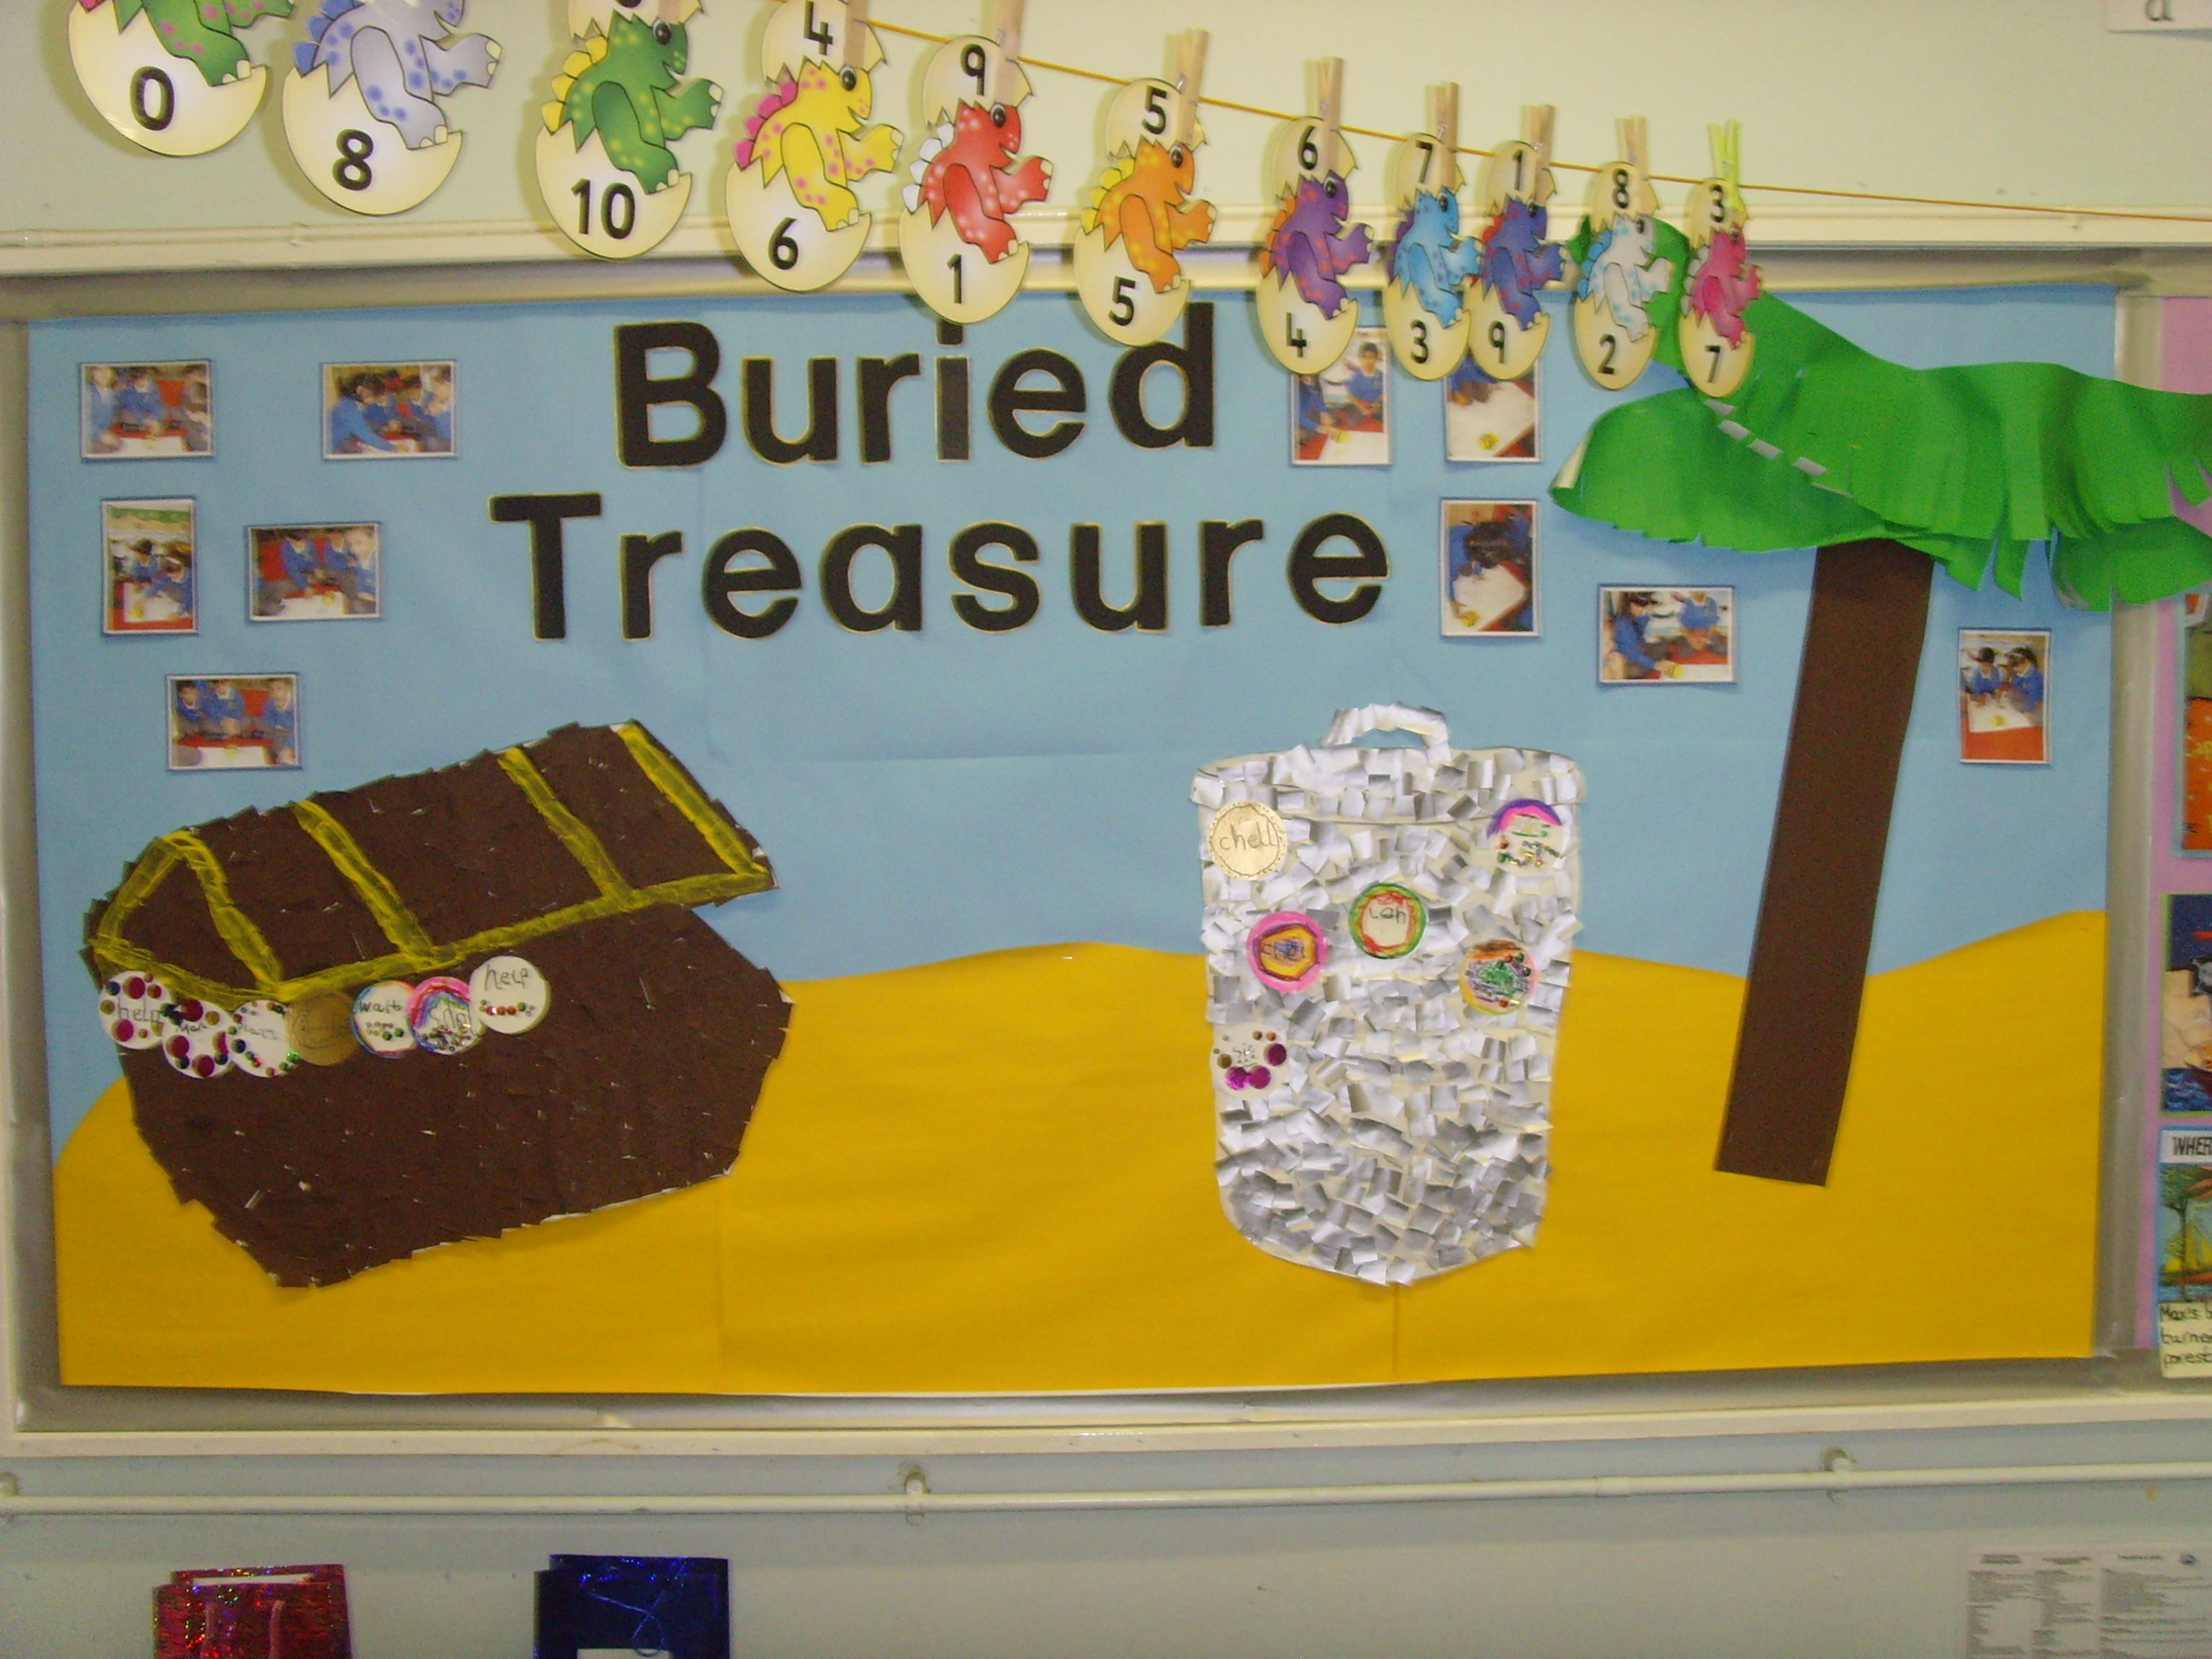 Phonics Buried Treassure Display